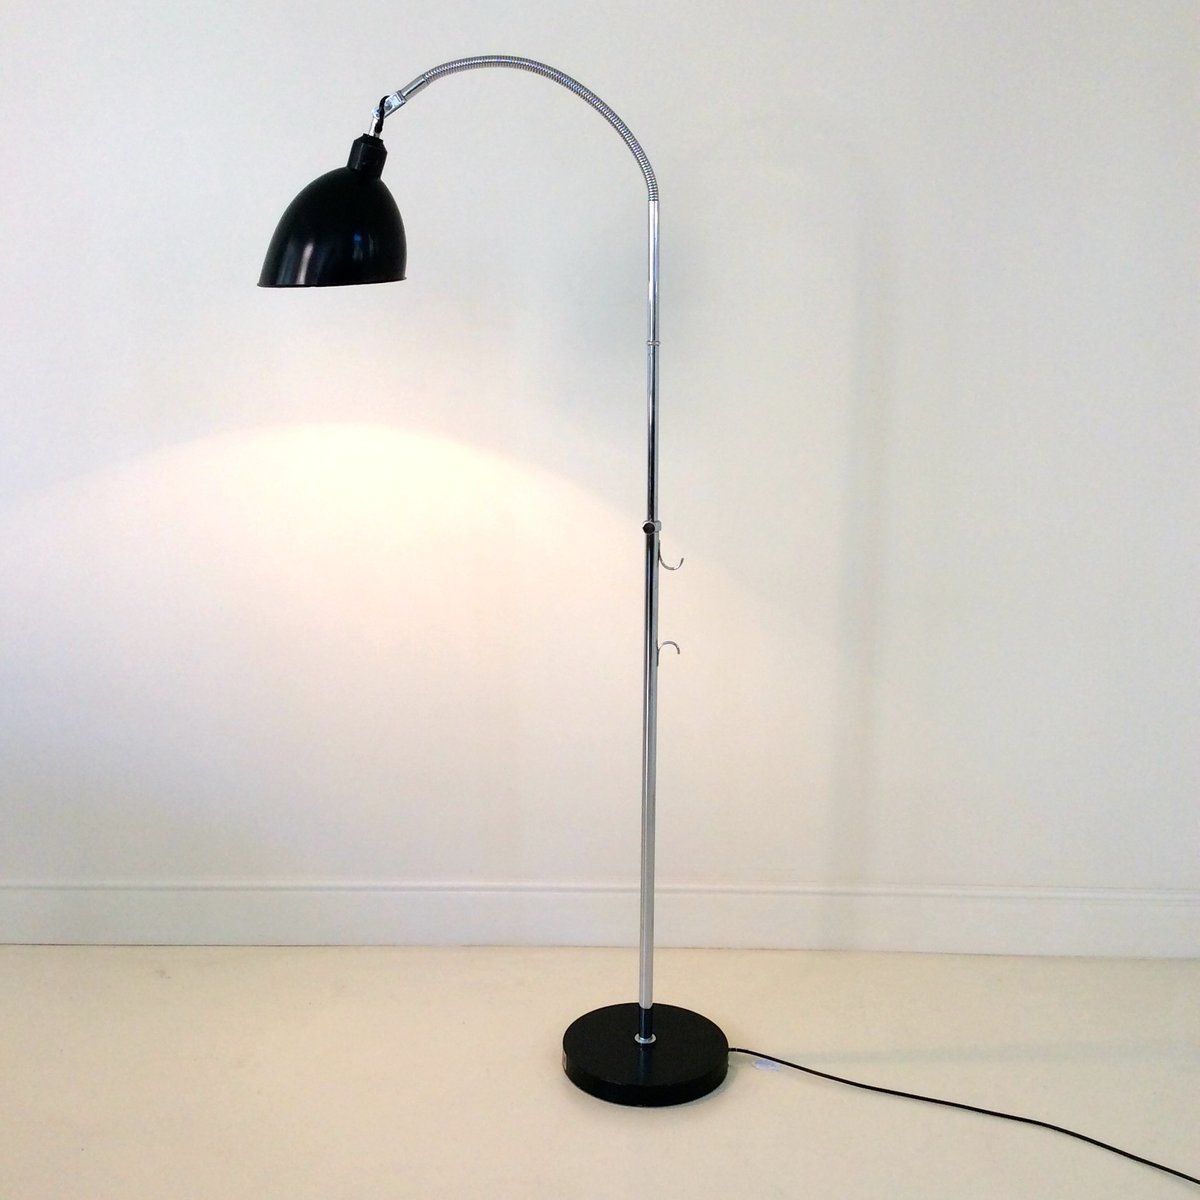 swiss bauhaus floor lamp by christian dell for belmag 1920s for sale at pamono. Black Bedroom Furniture Sets. Home Design Ideas